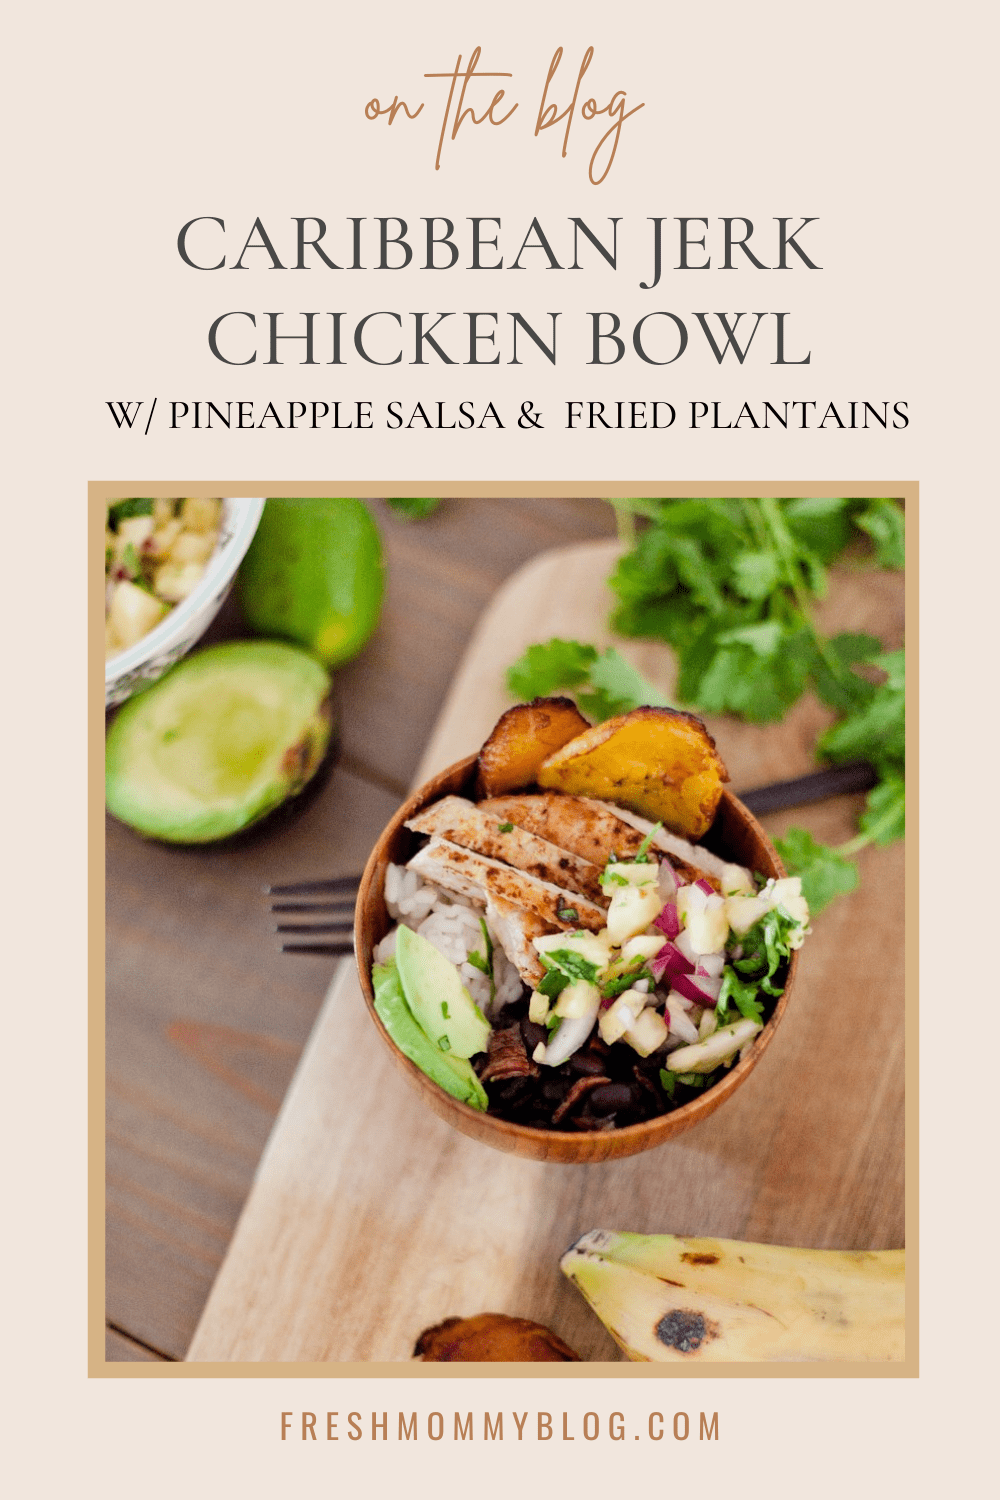 Caribbean Jerk Chicken Bowl with Pineapple Salsa and Fried Plantains for a flavorful dinner recipe idea featured by popular Florida foodie blogger, Tabitha Blue of Fresh Mommy Blog | Caribbean Jerk Chicken by popular Florida lifestyle blog, Fresh Mommy Blog: Pinterest image of a Caribbean jerk chicken bowl with fried plantains, white rice, avocado slices, pineapple salsa and Jerk chicken.